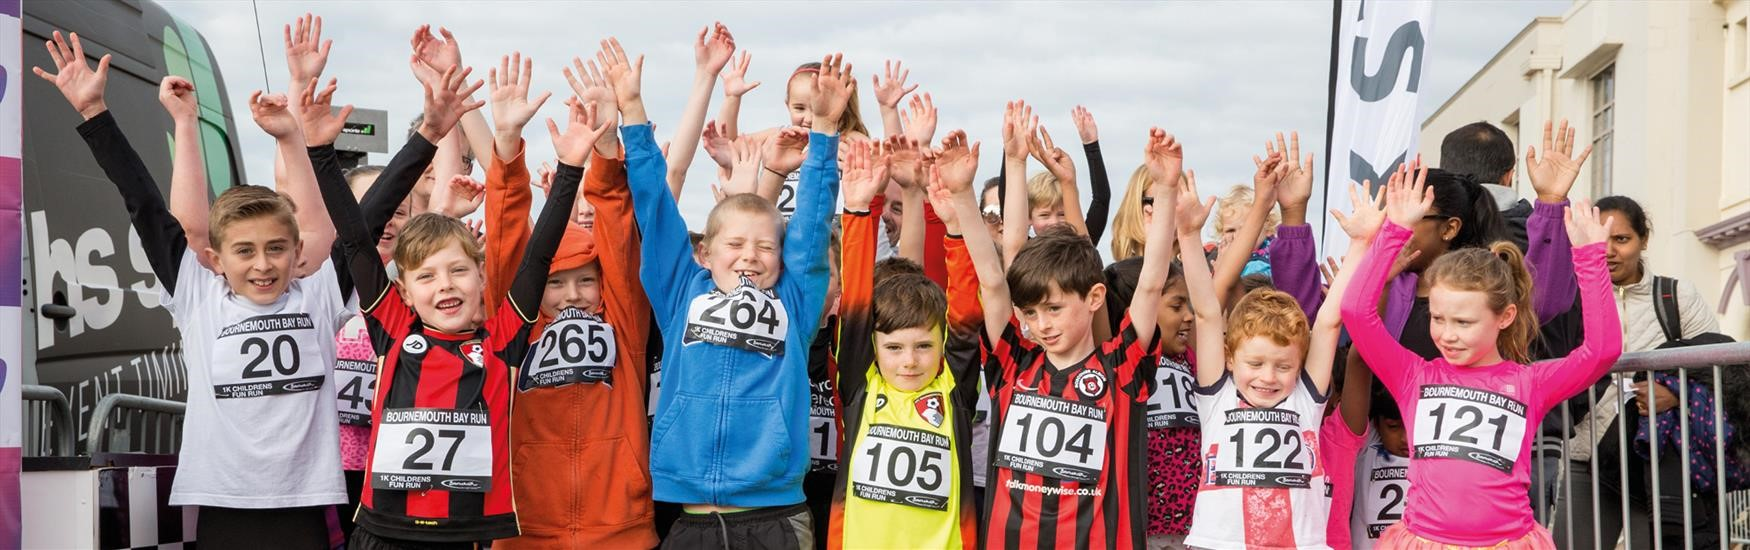 Kids excited to race in Bournemouths Bay Run